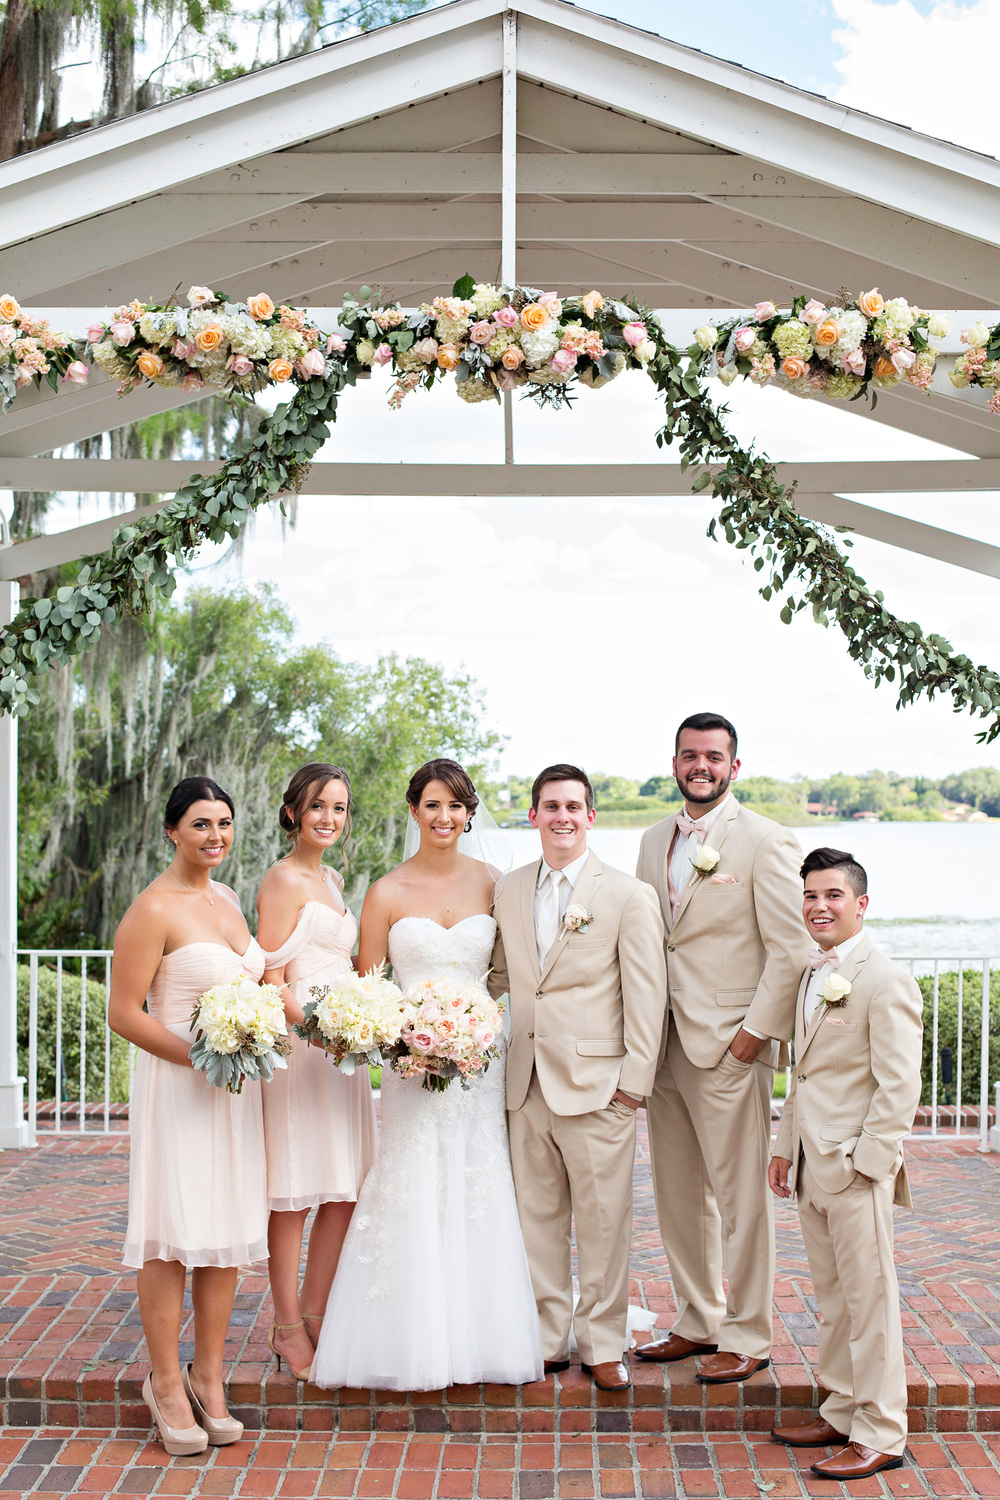 kristenweaver.com | Cypress Grove Estate House Weddings | Orlando Florida Wedding Photographer | Kristen Weaver Photography